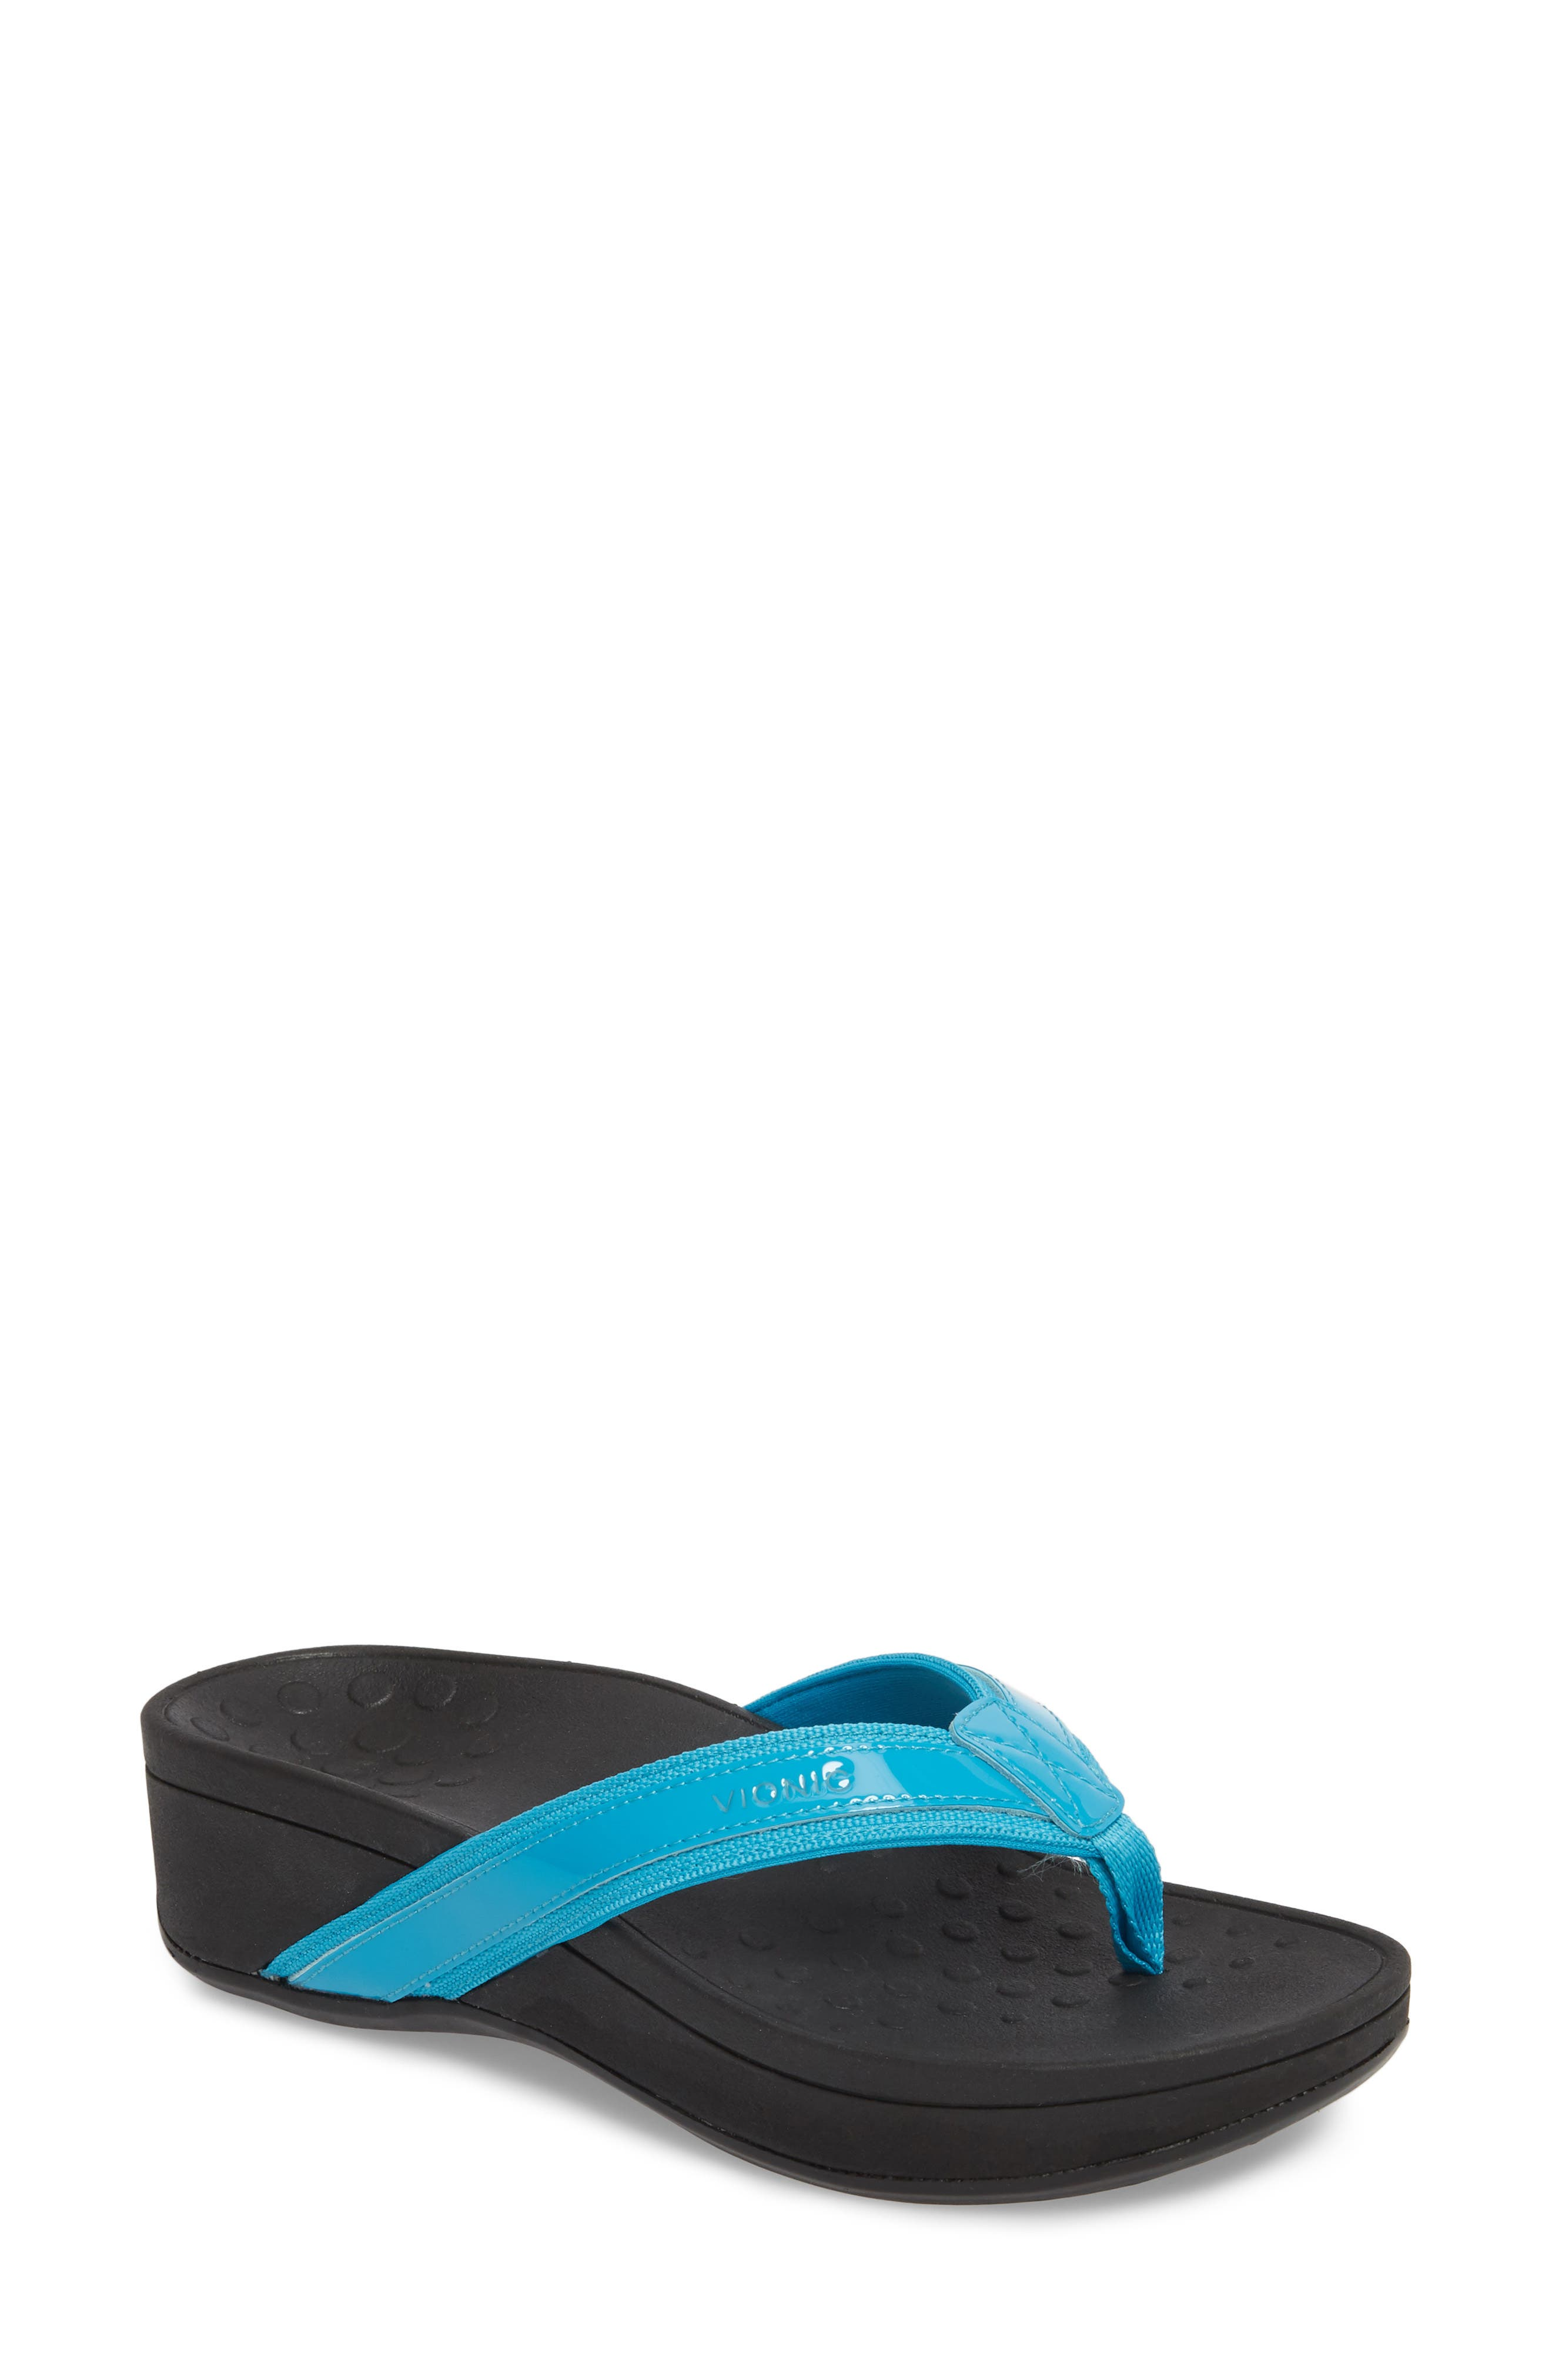 Vionic High Tide Wedge Flip Flop (Women)